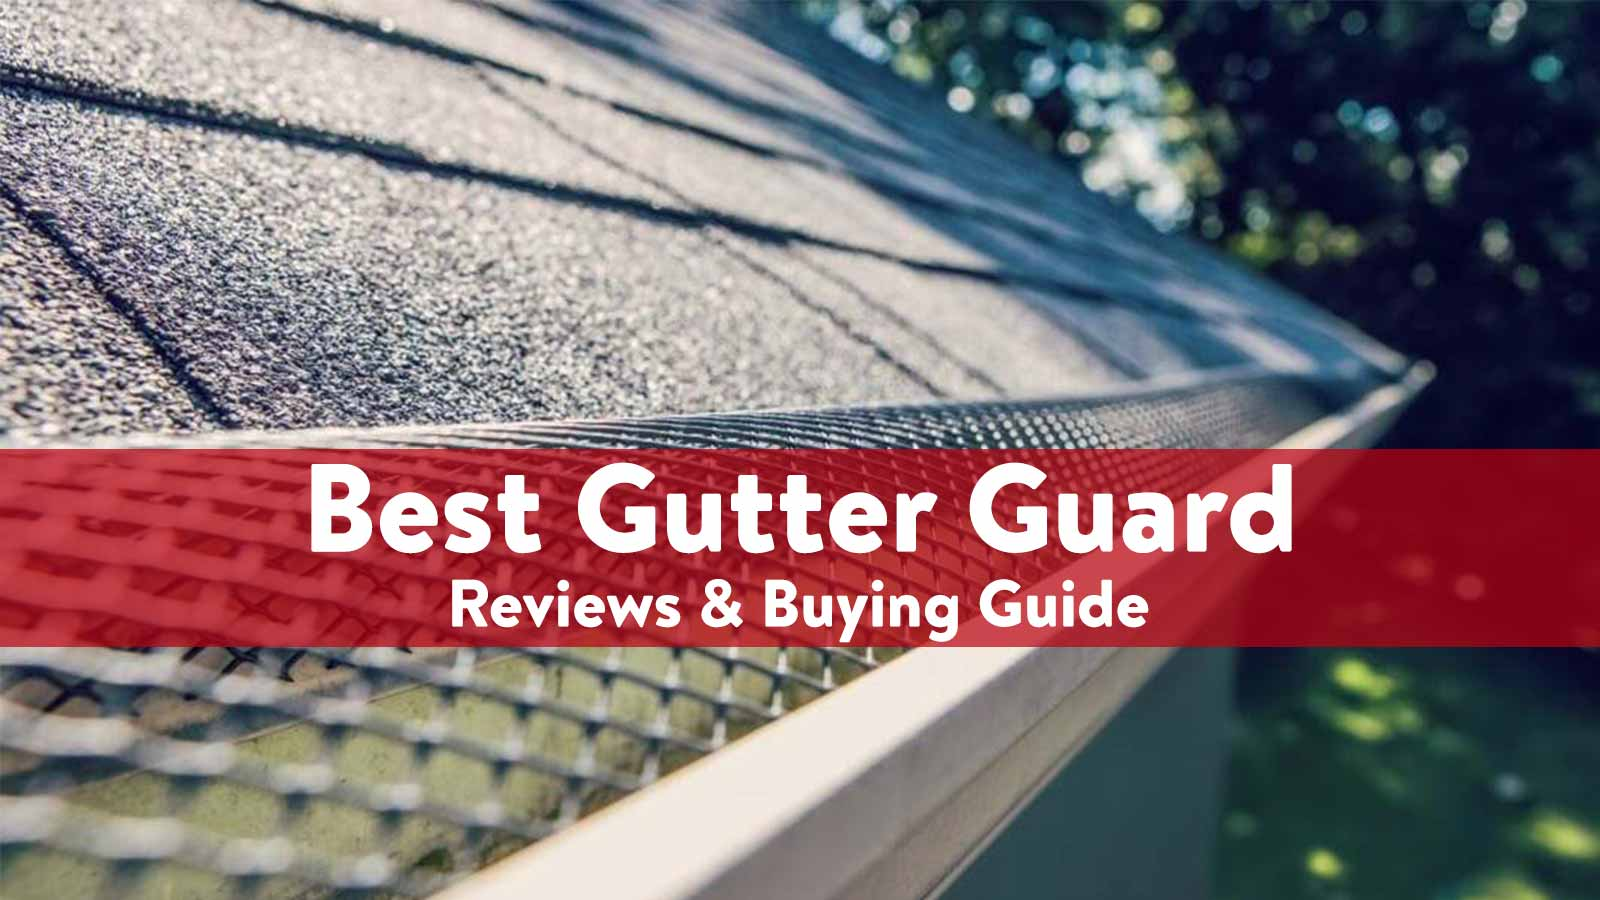 Best Gutter Guard